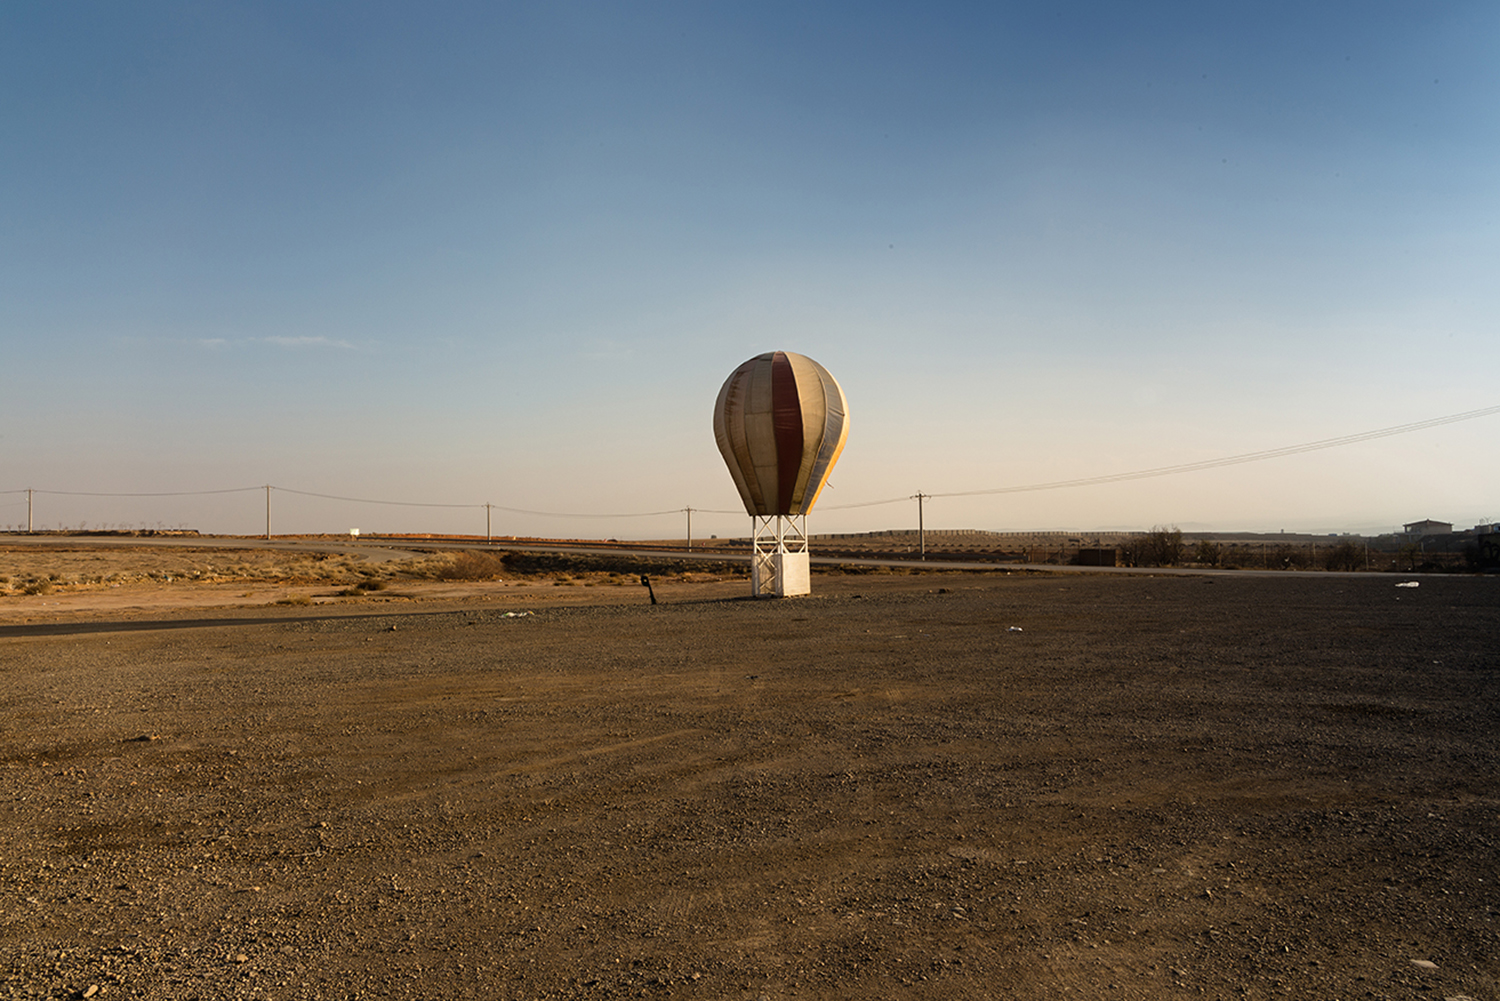 Alongside the road to Neyshabur from Mashhad. The sculpture of balloon, which has been abandoned in roadside due to obsolescence, Neyshabur, Iran.